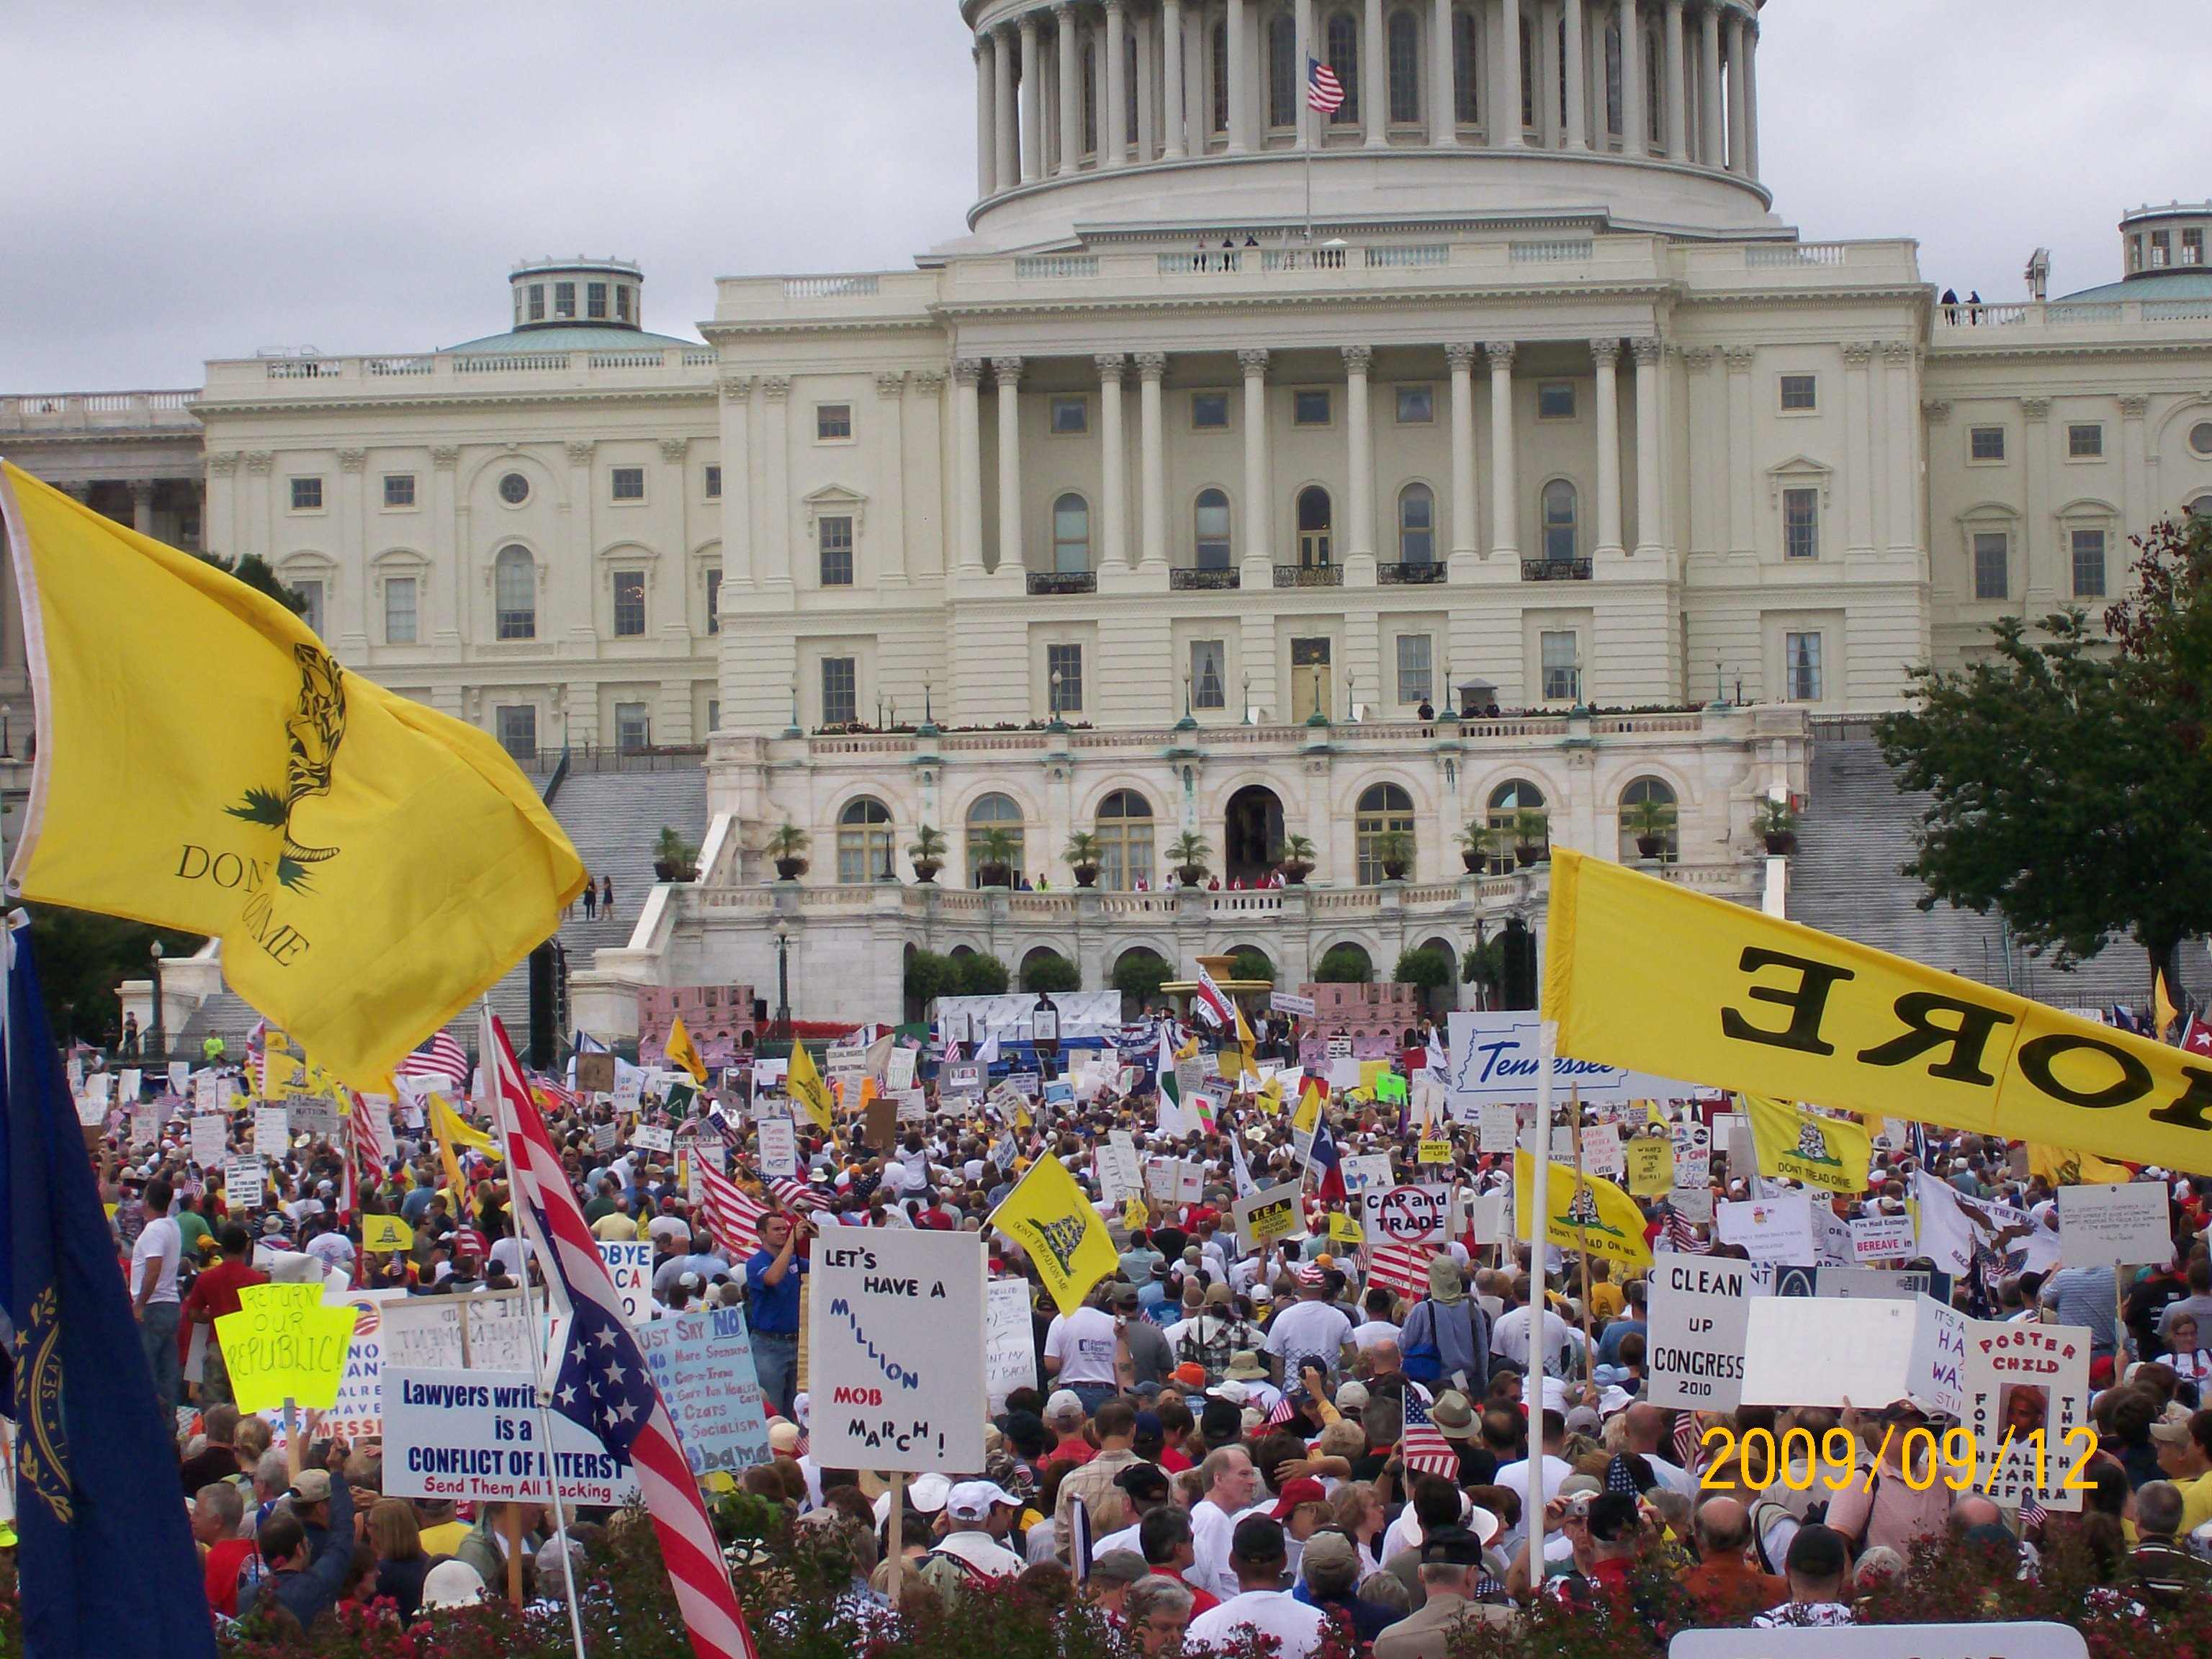 2009-09-12-washington-tea-party-rally-173